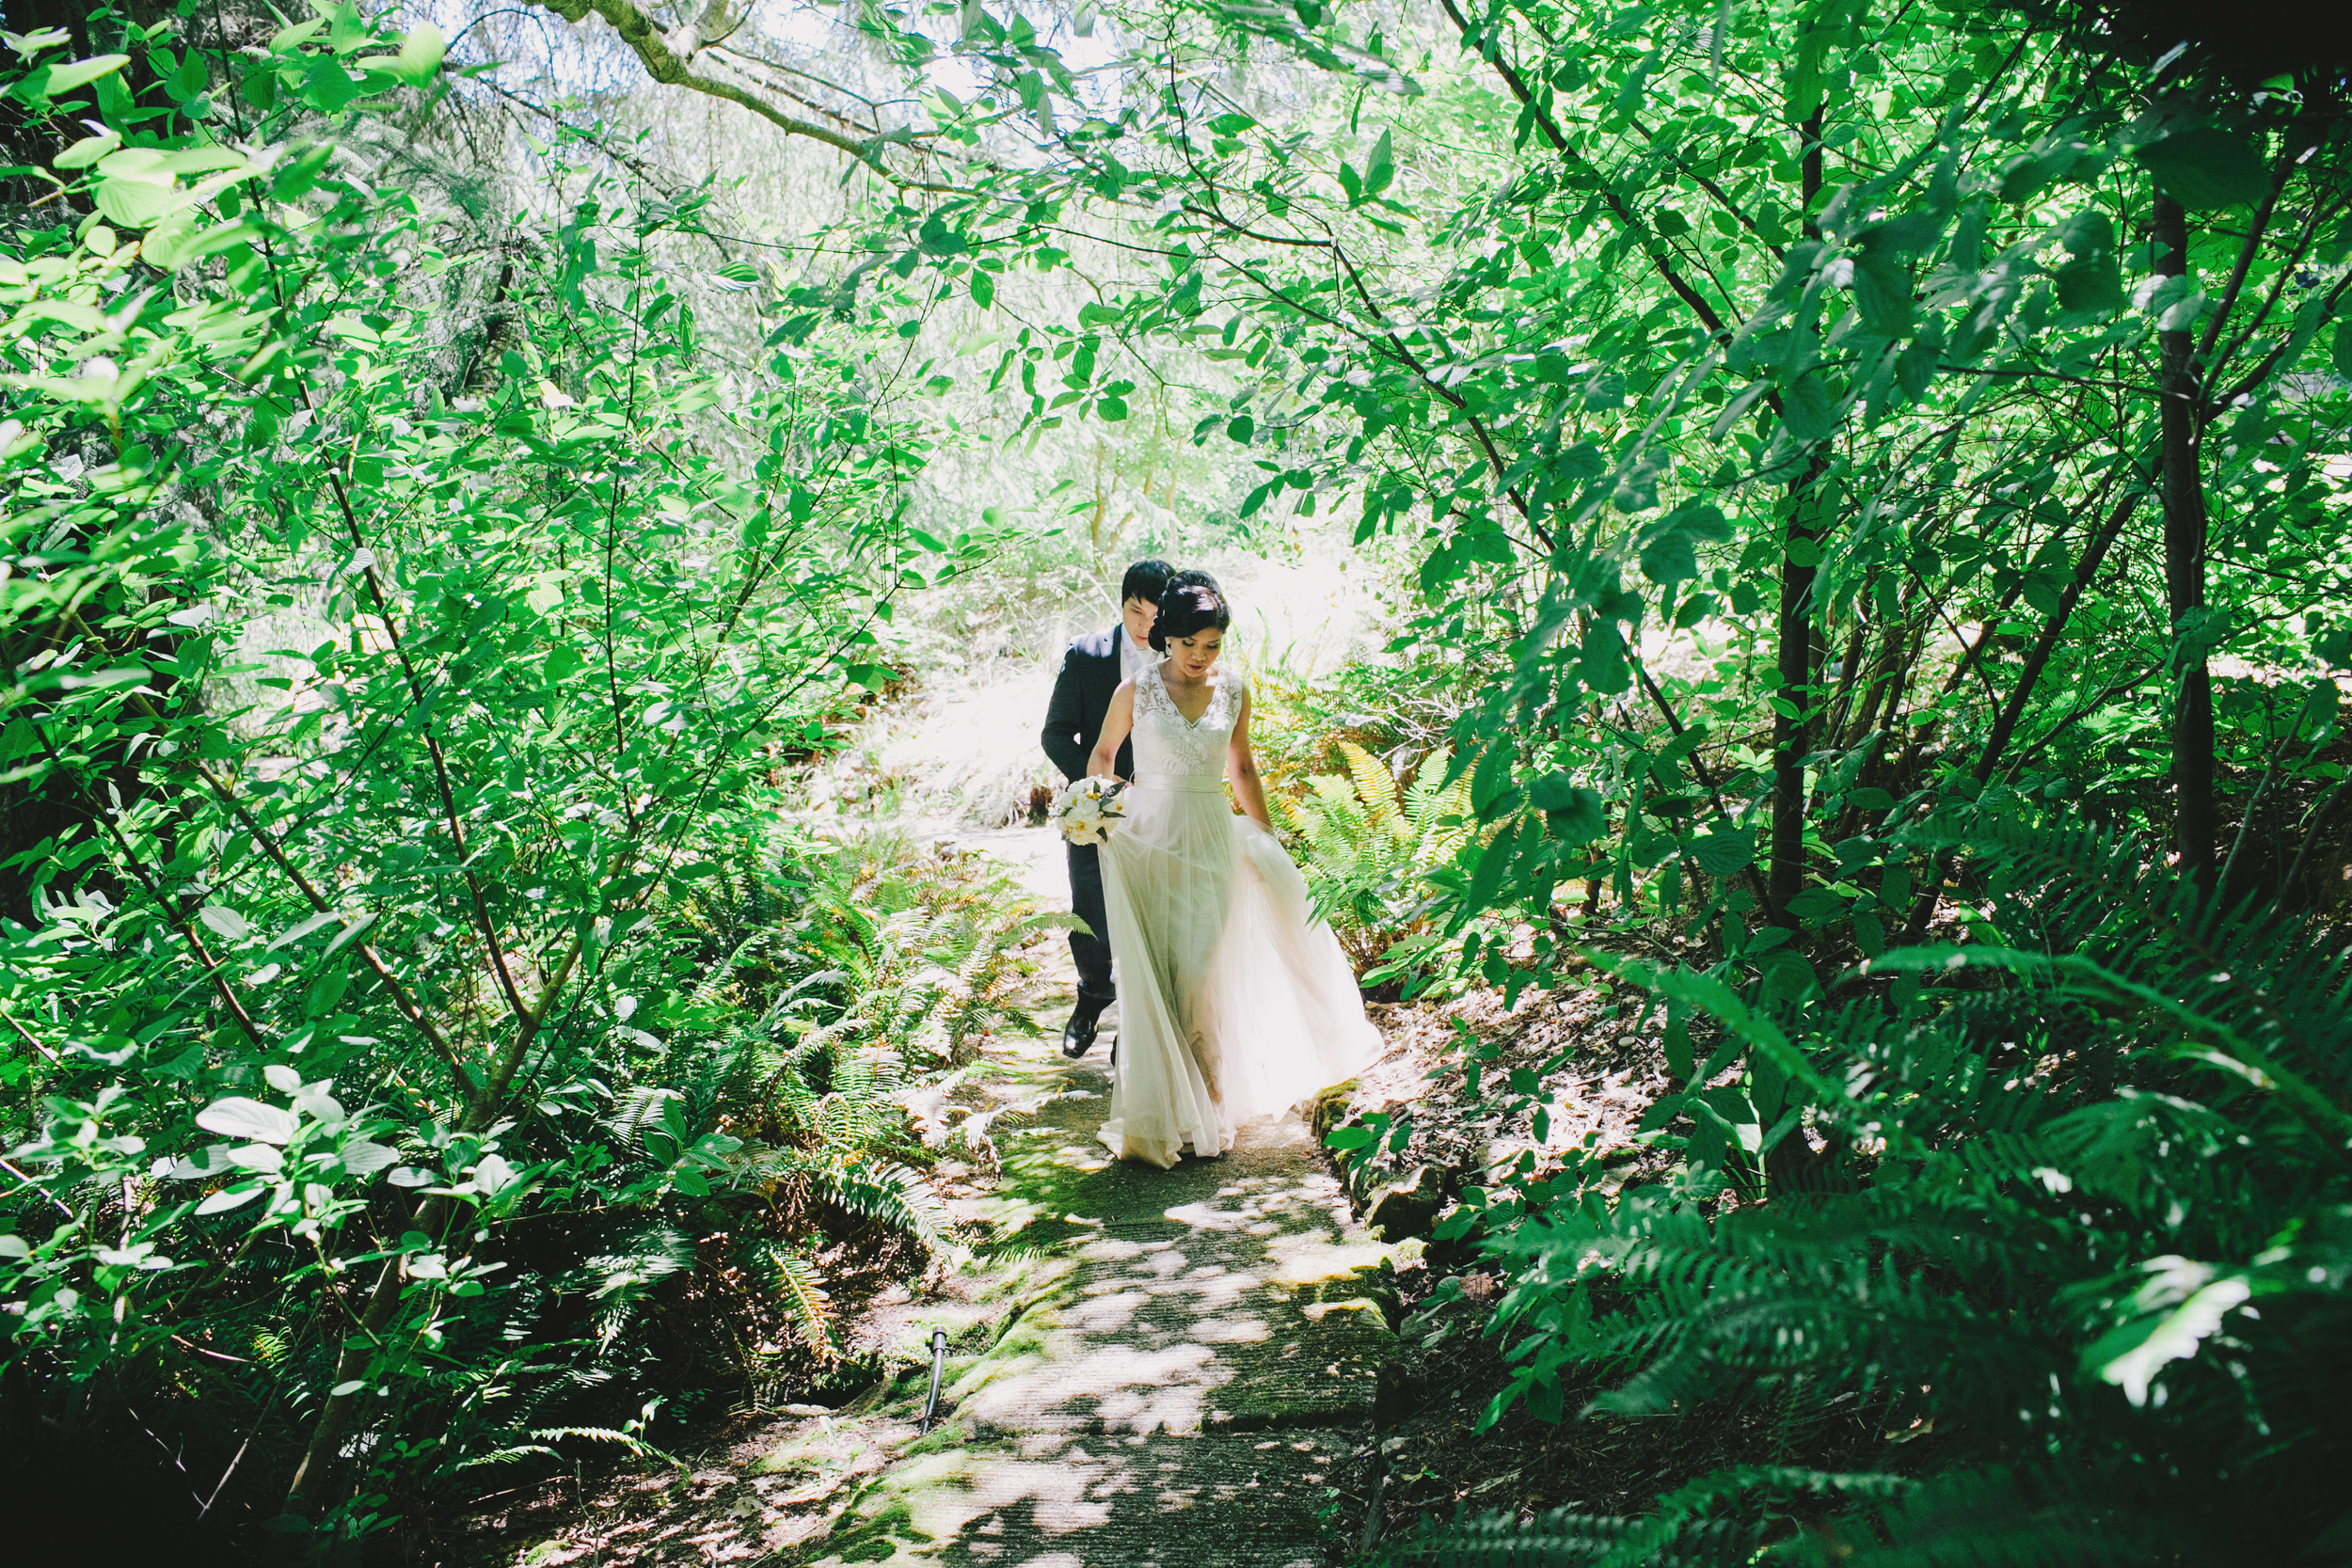 Tilden_Wedding_Berkeley-07.JPG